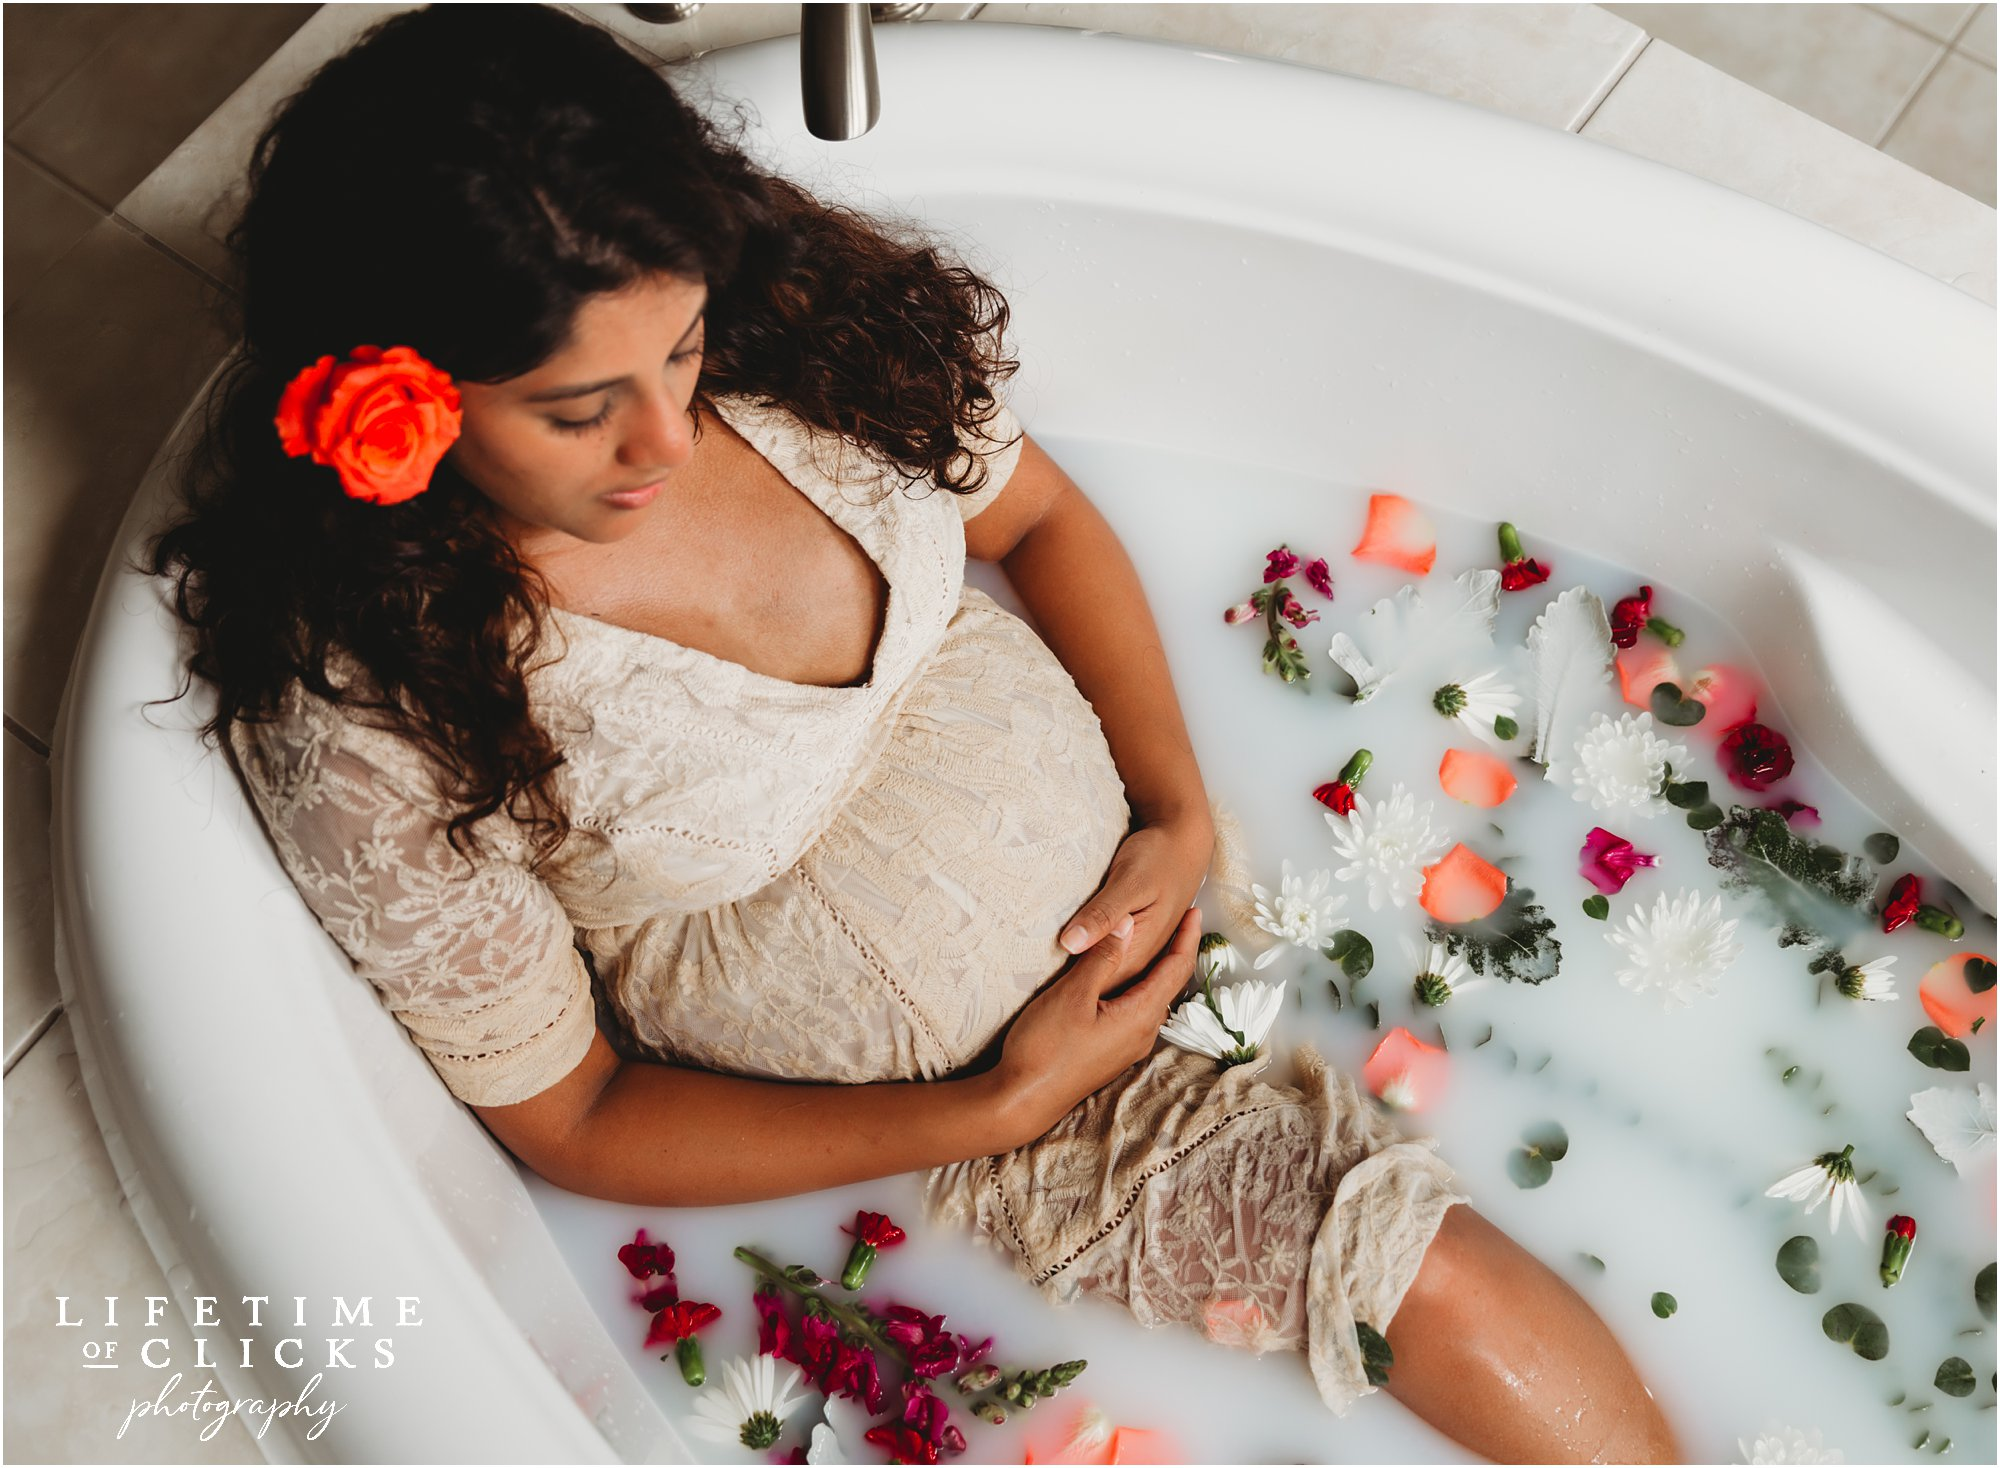 milk bath maternity photo shoot in Houston TX